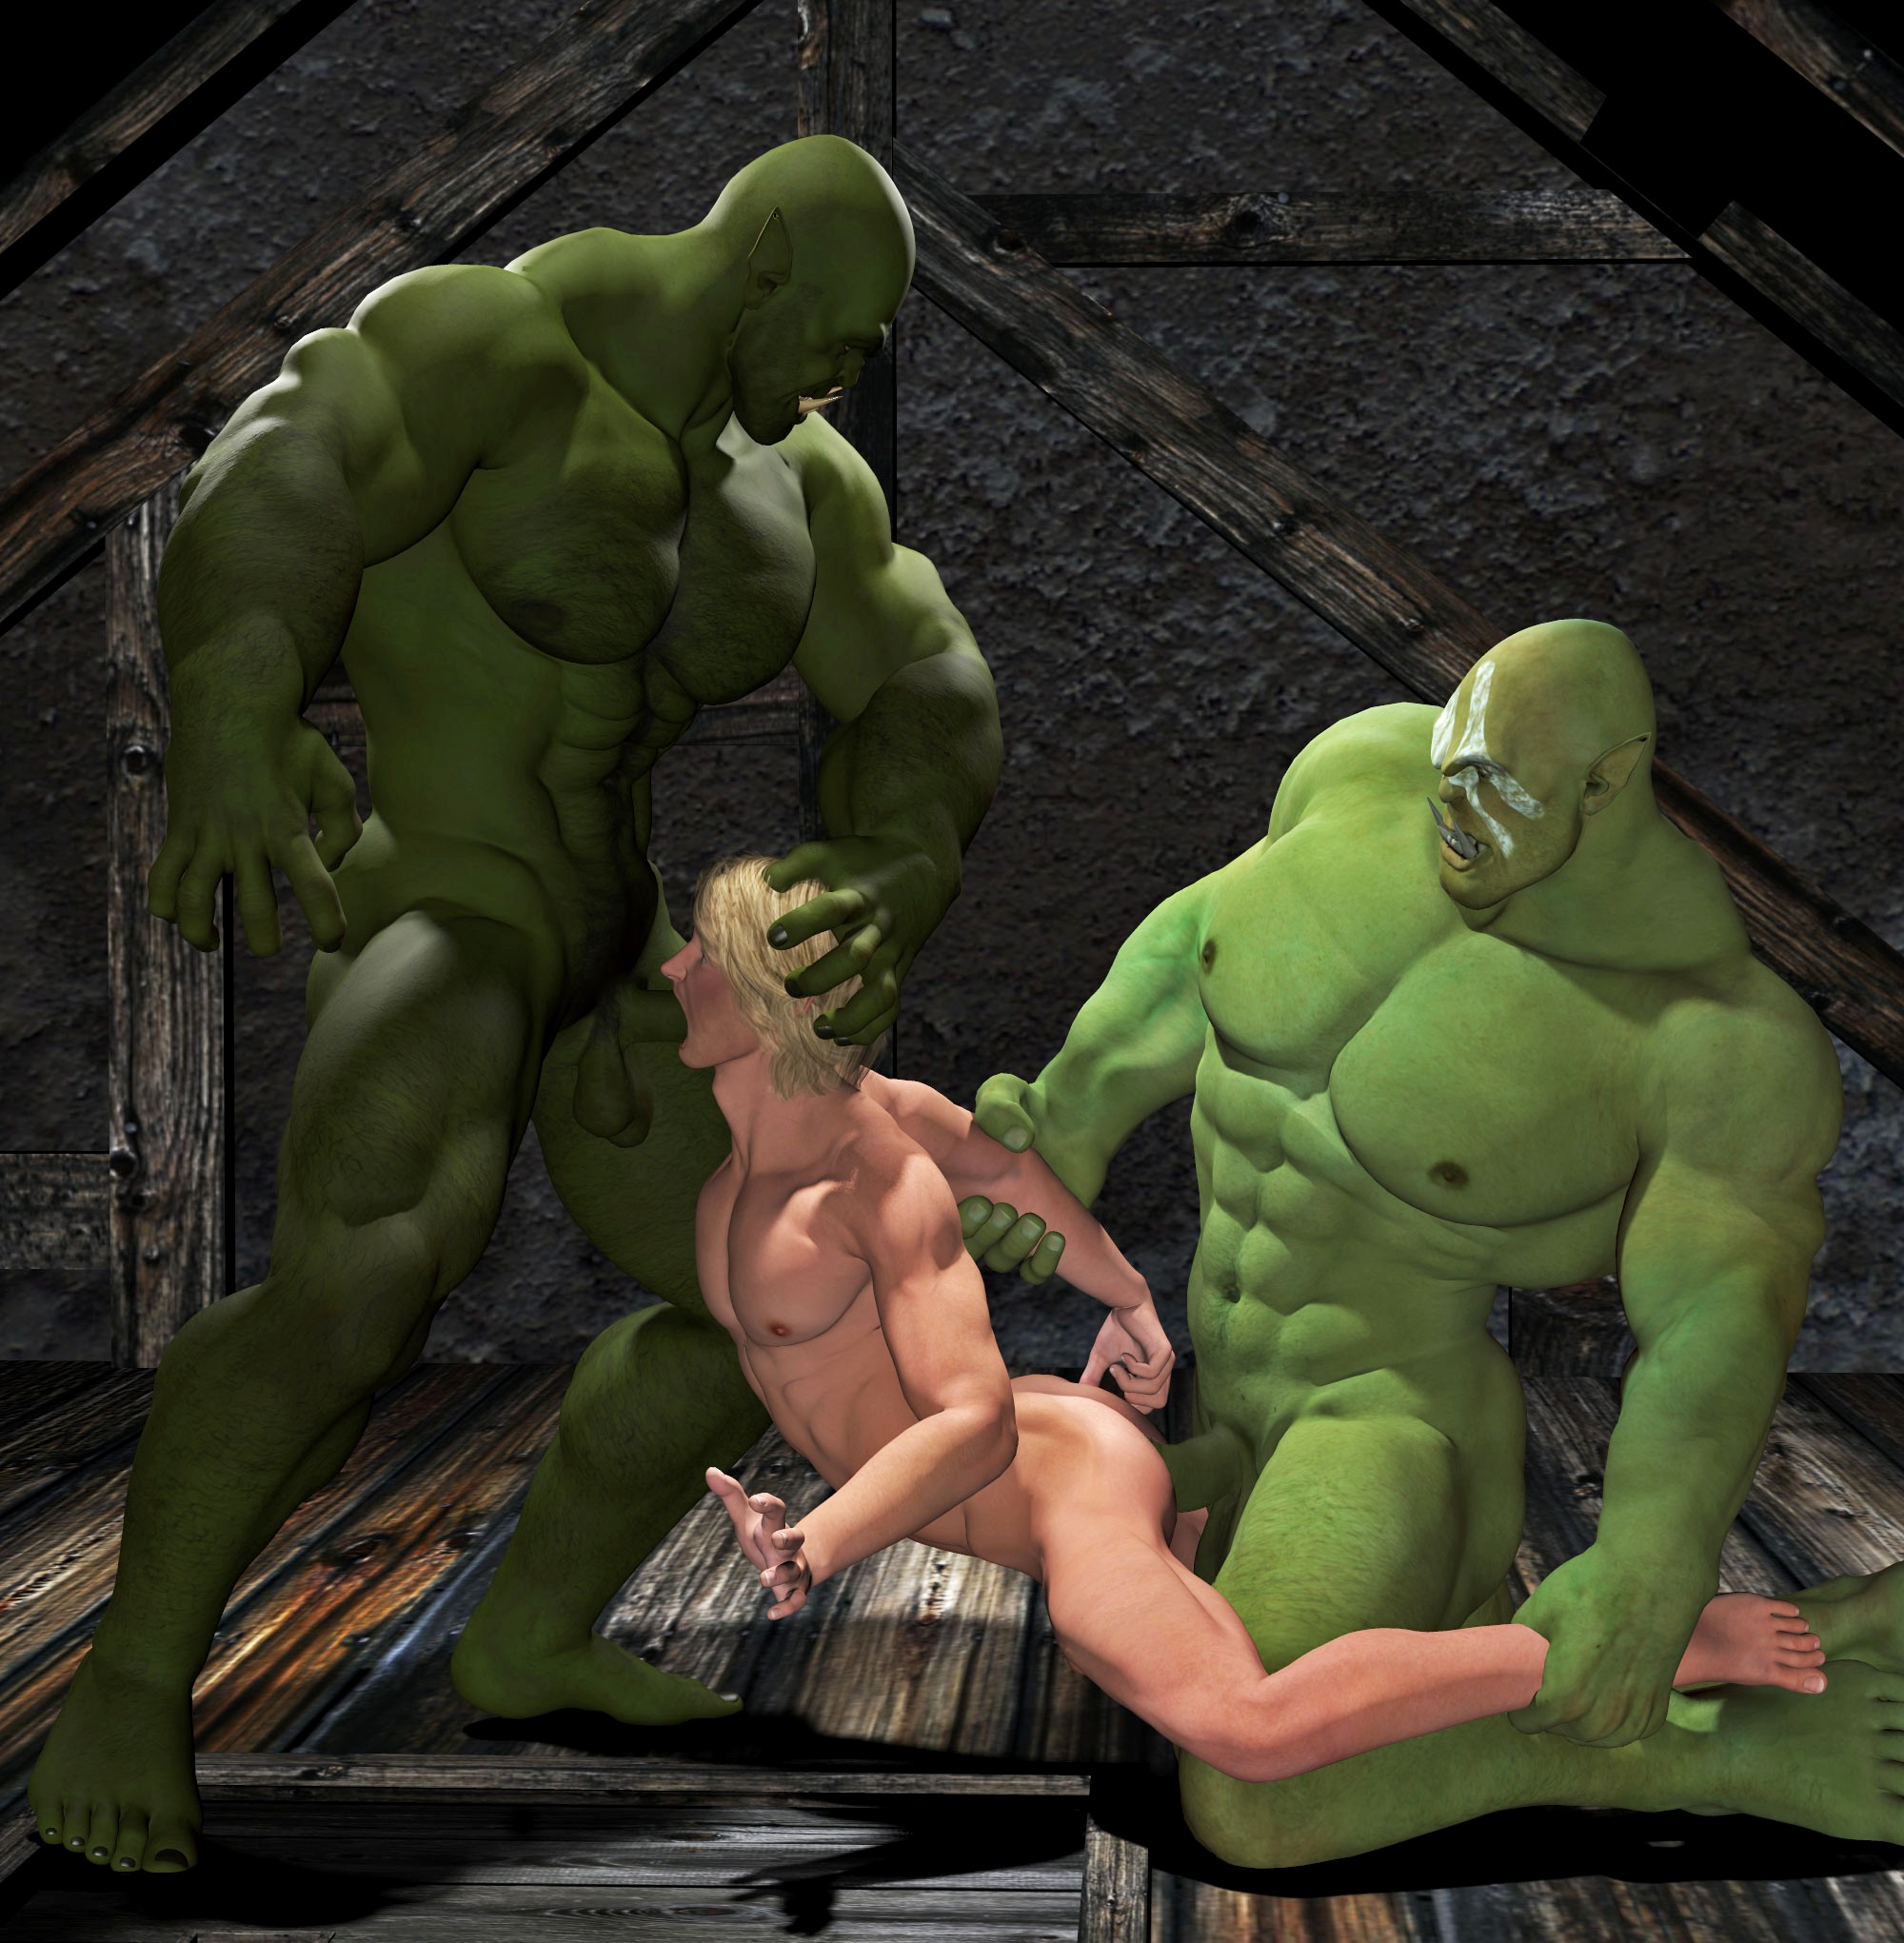 3d green monster fuck hentai girl hard 3